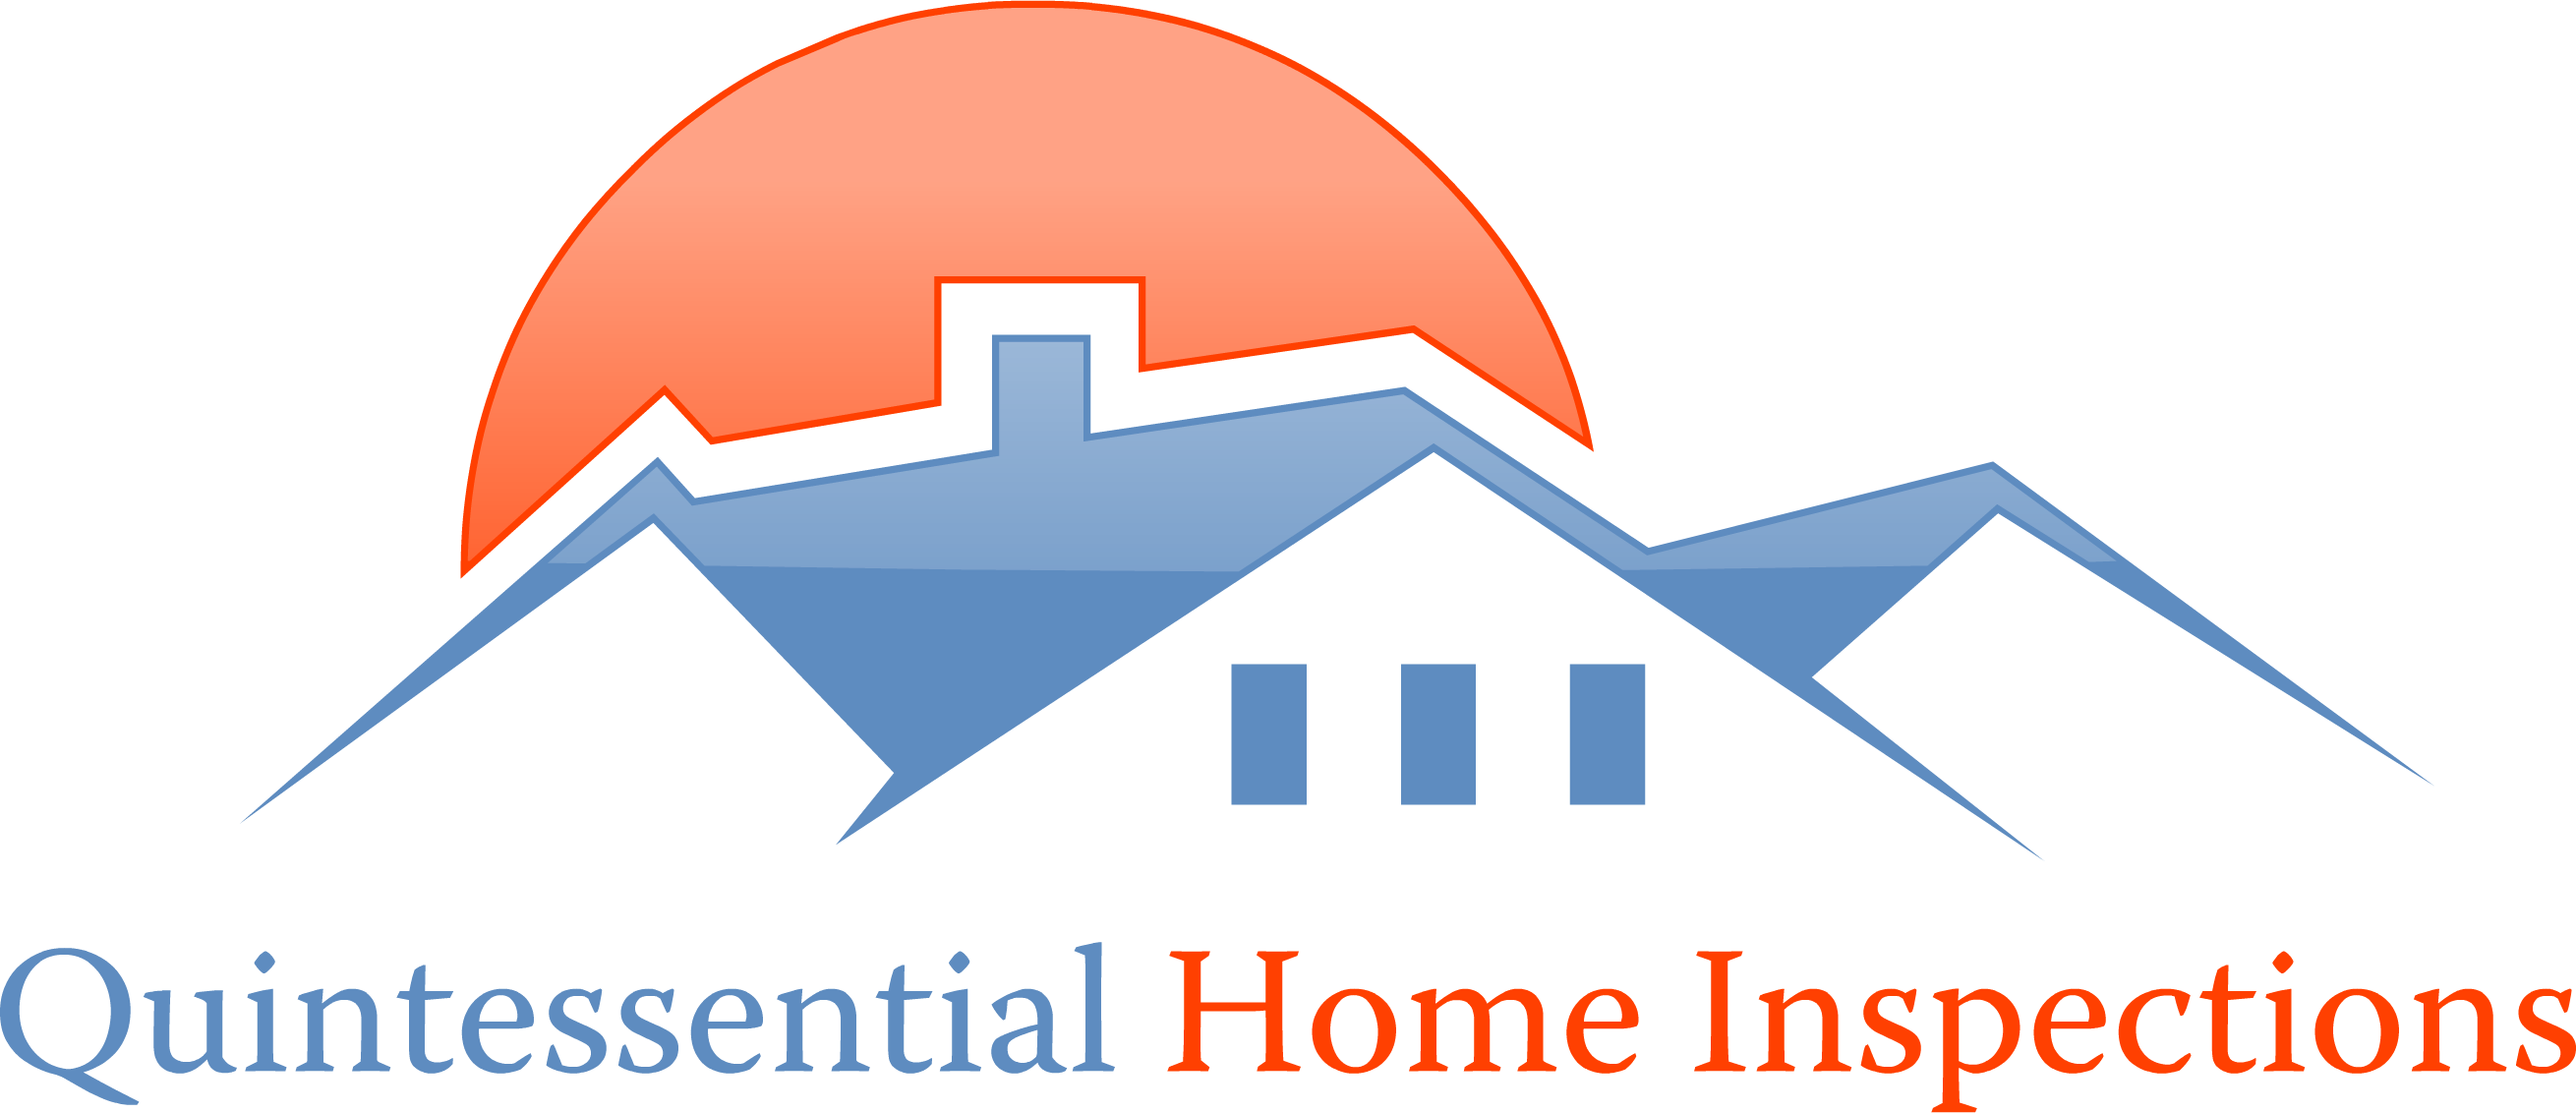 Quintessential Home Inspections - Orland Park and Southwest Suburbs